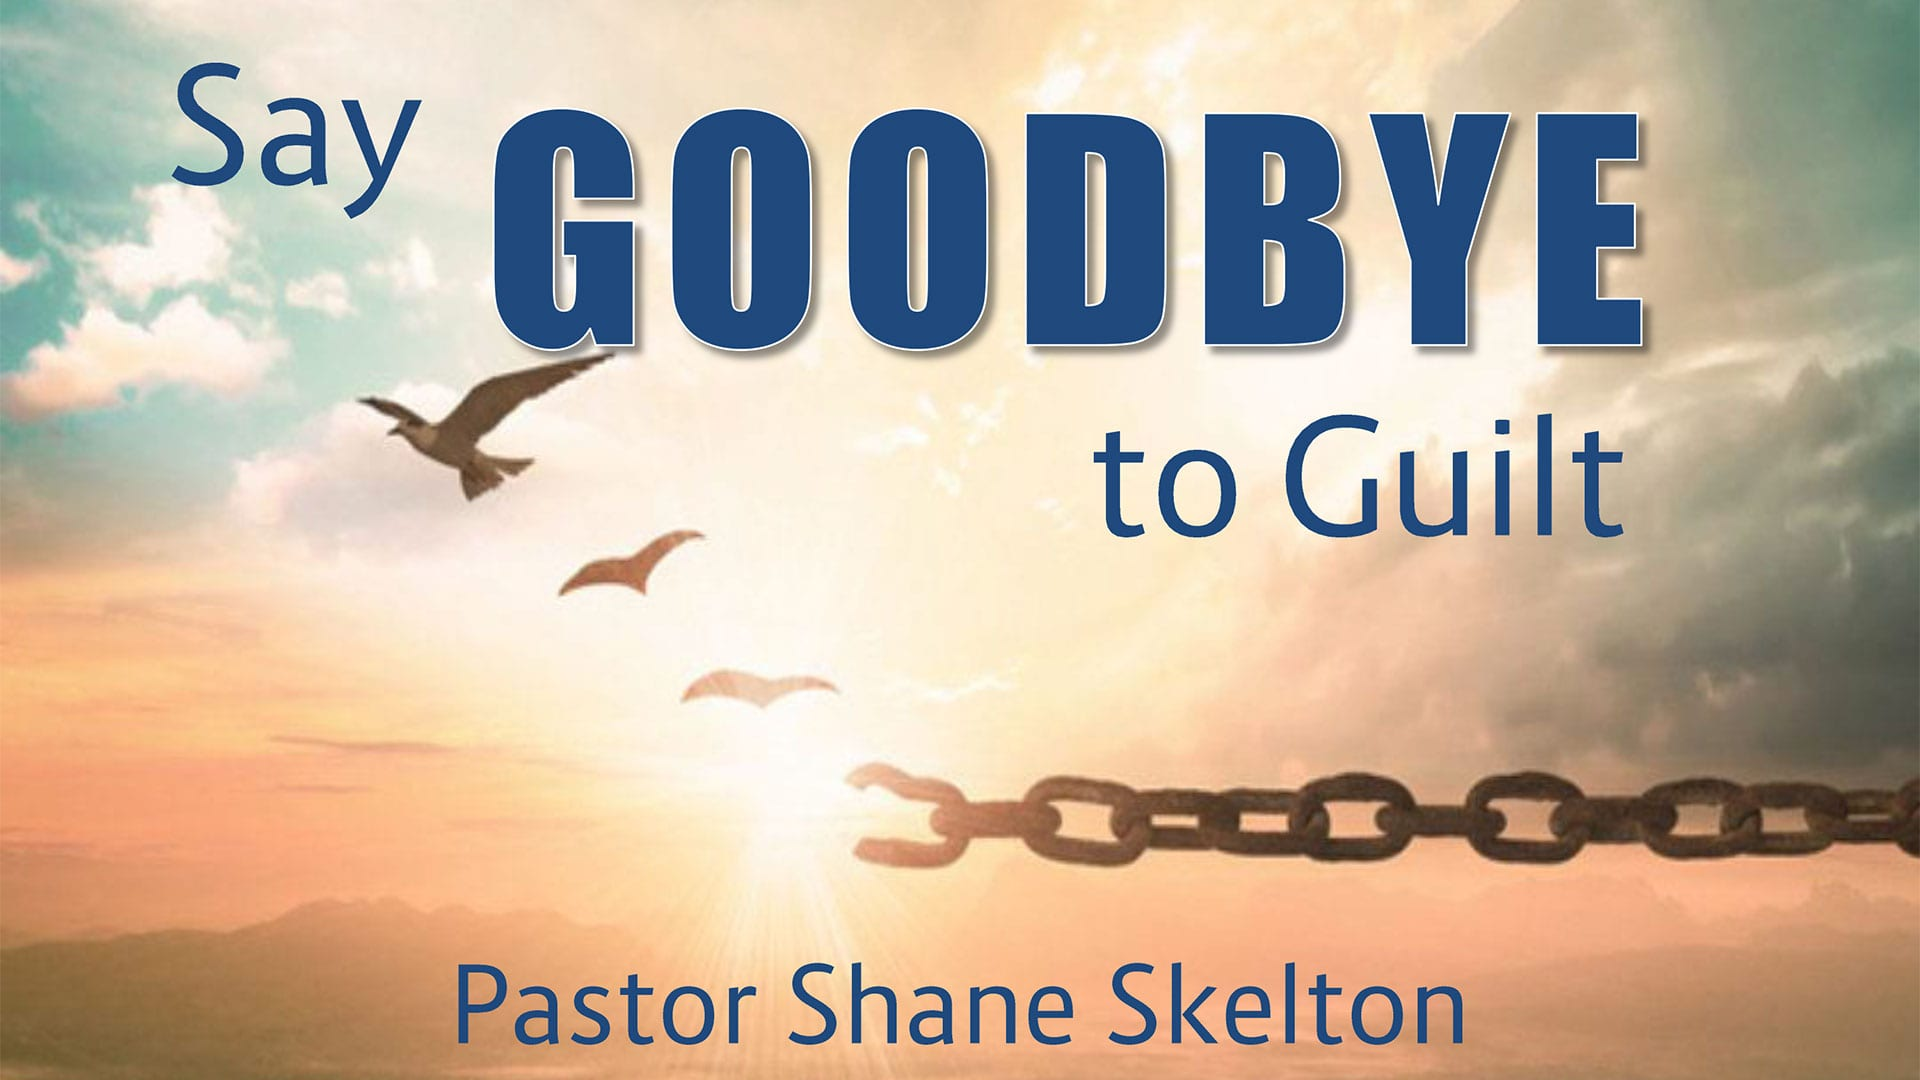 CBC_2020_11_22_PM_say_goodbye_to_guilt_Outline_Thumbnail_1920x1080